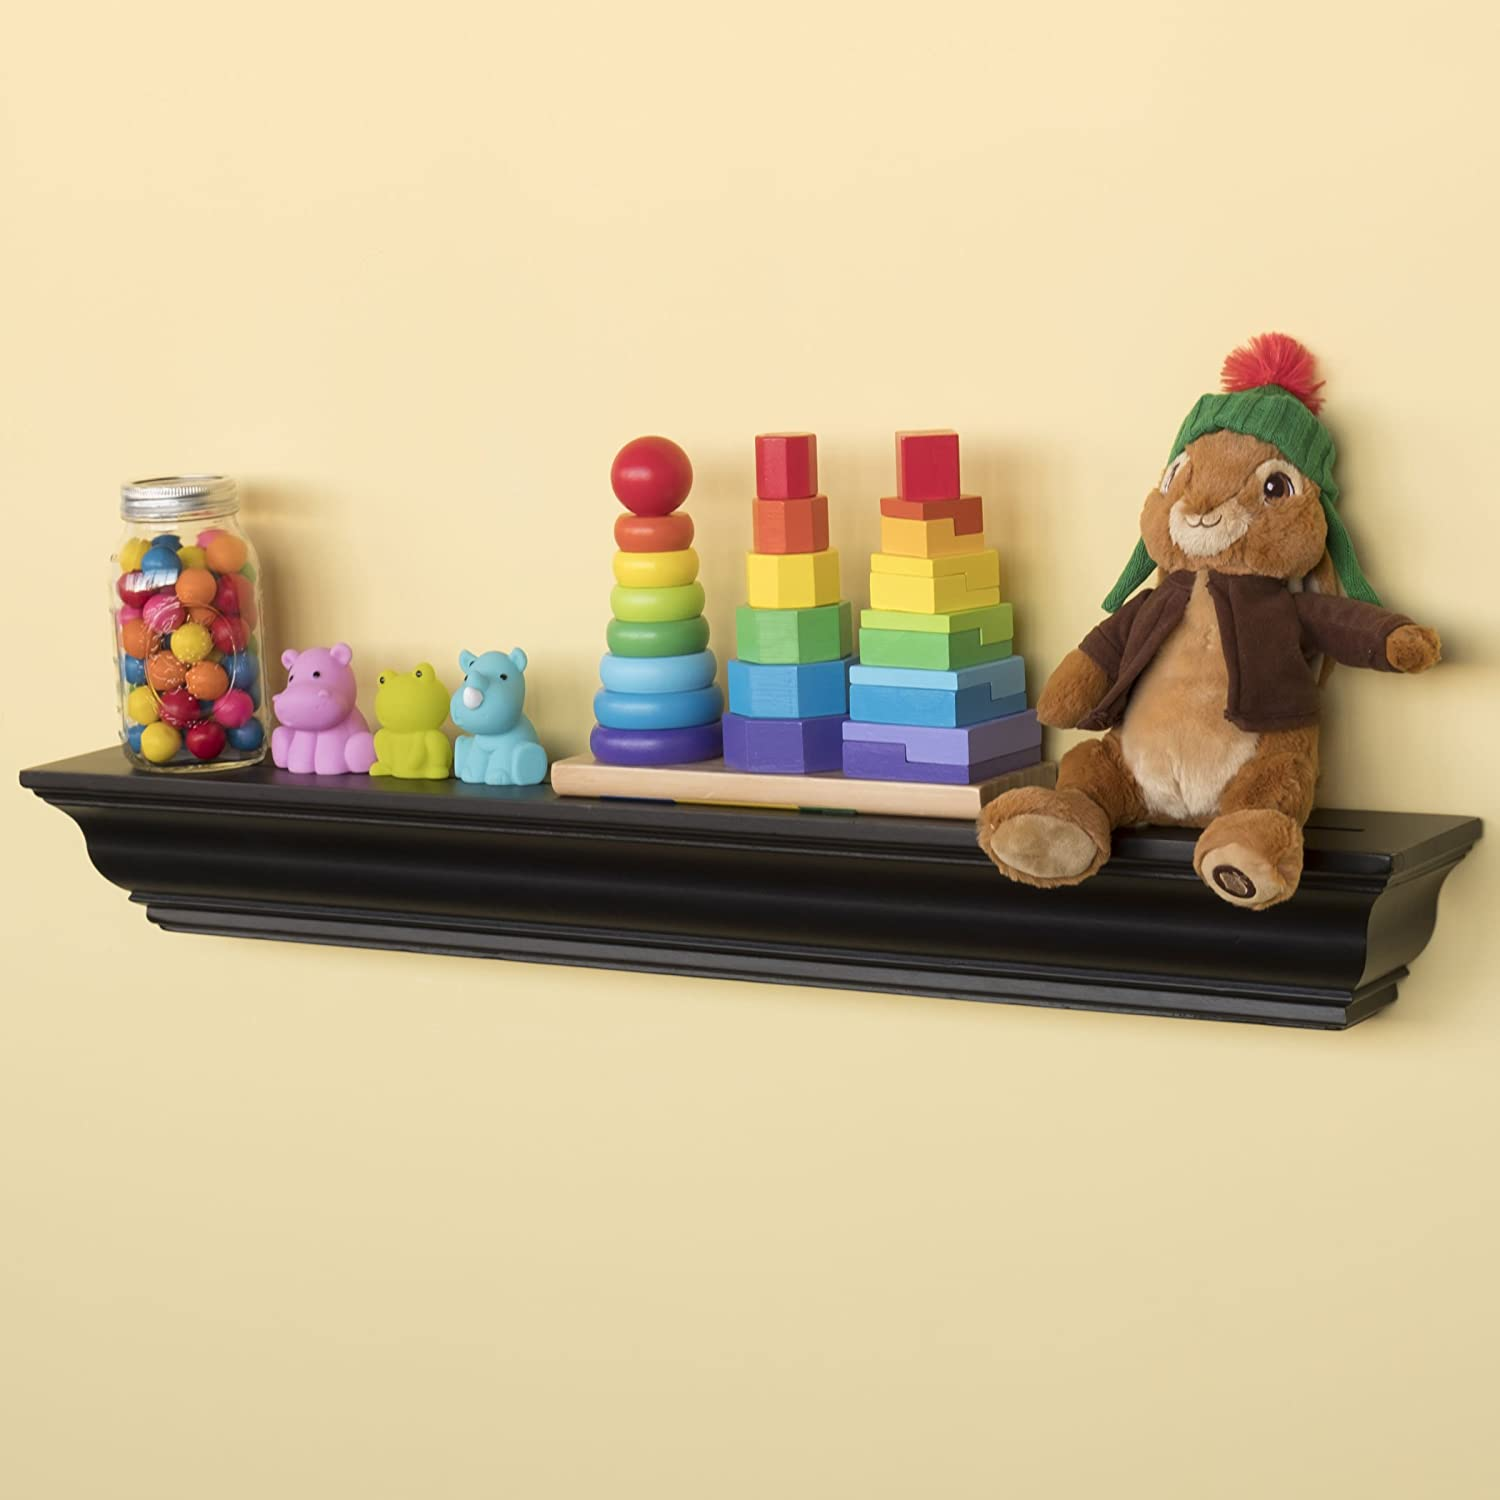 brightmaison Crown Molding Style Kids Room Wall Shelf Black Color 36 Inches Children's Stylish Floating Ledge Shelf